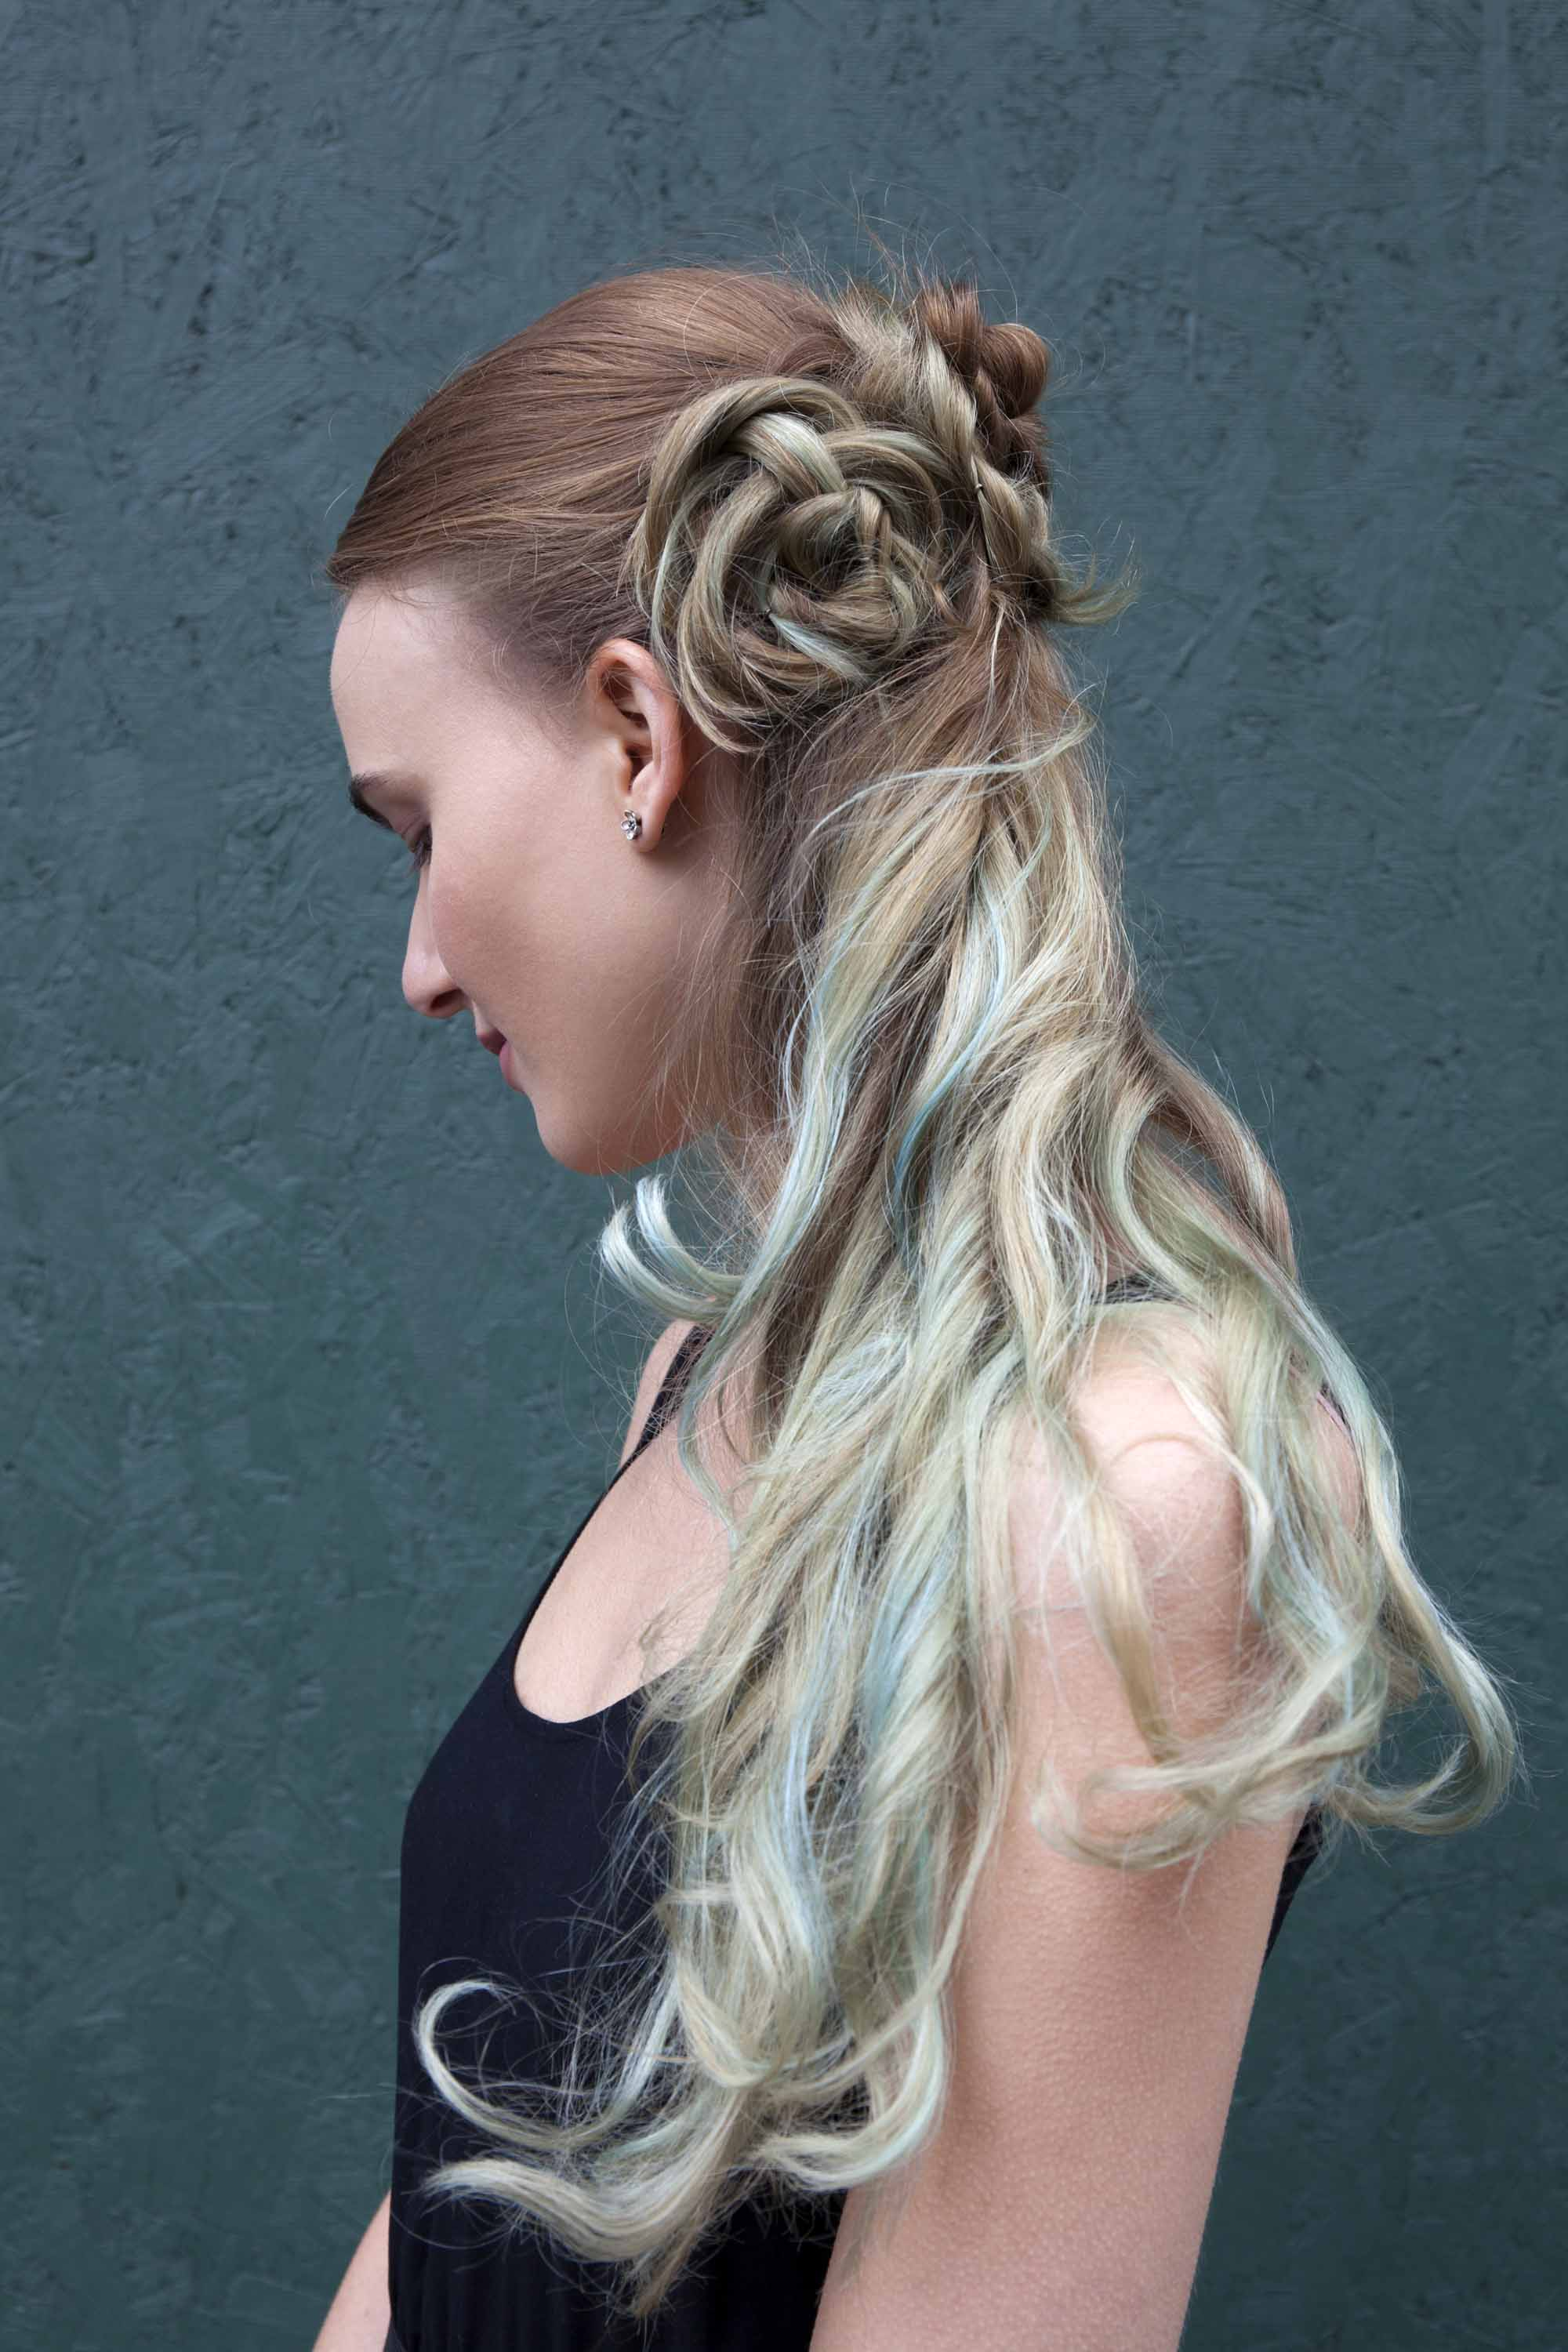 DIY Prom Hairstyles include half up, half down styles.